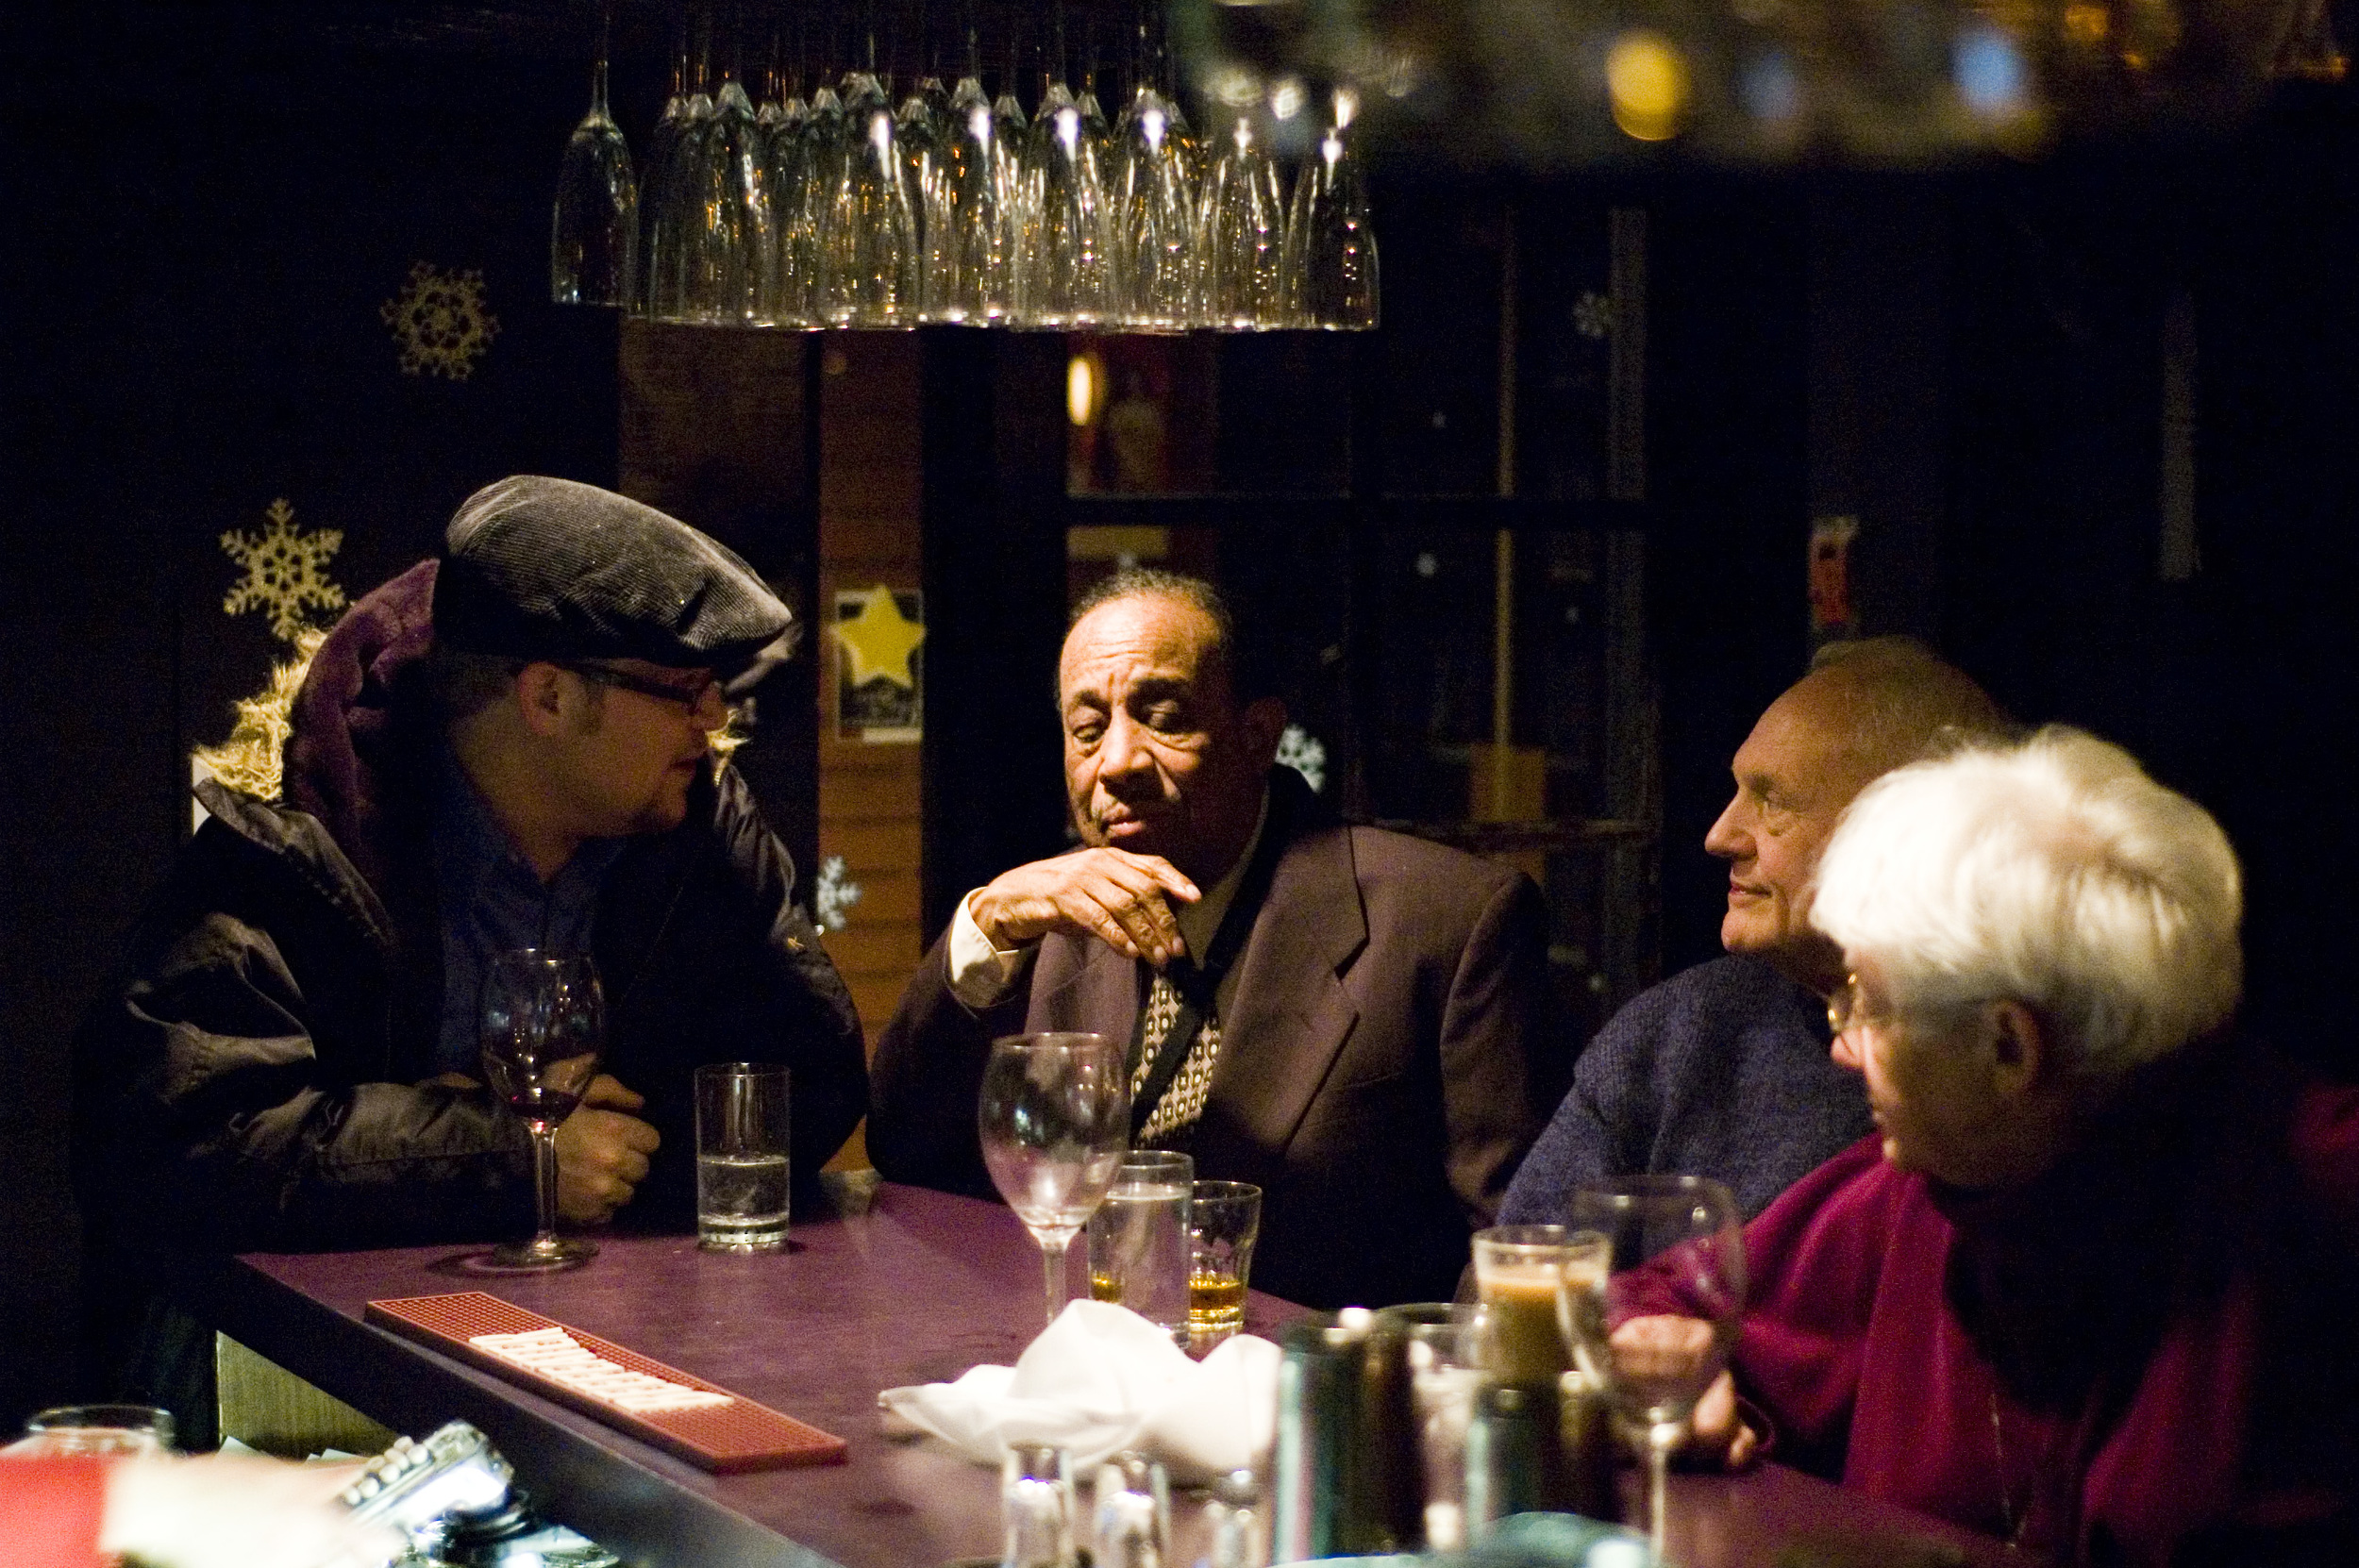 IHS with Lou Donaldson at the Cellar, Vancouver, BC 2007. Photo by  Steve Mynett